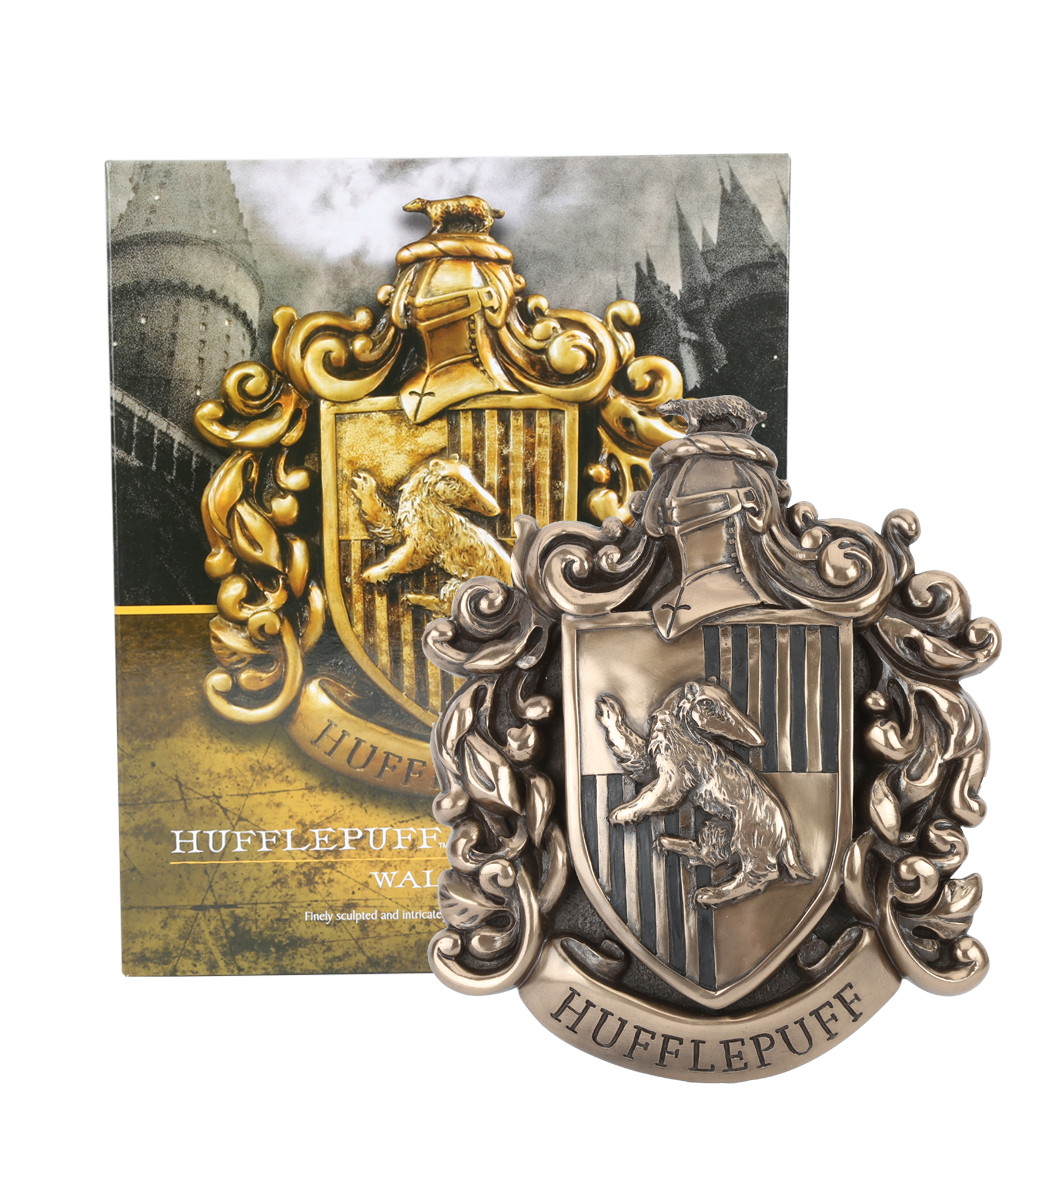 Hufflepuff crest png. Wall plaque